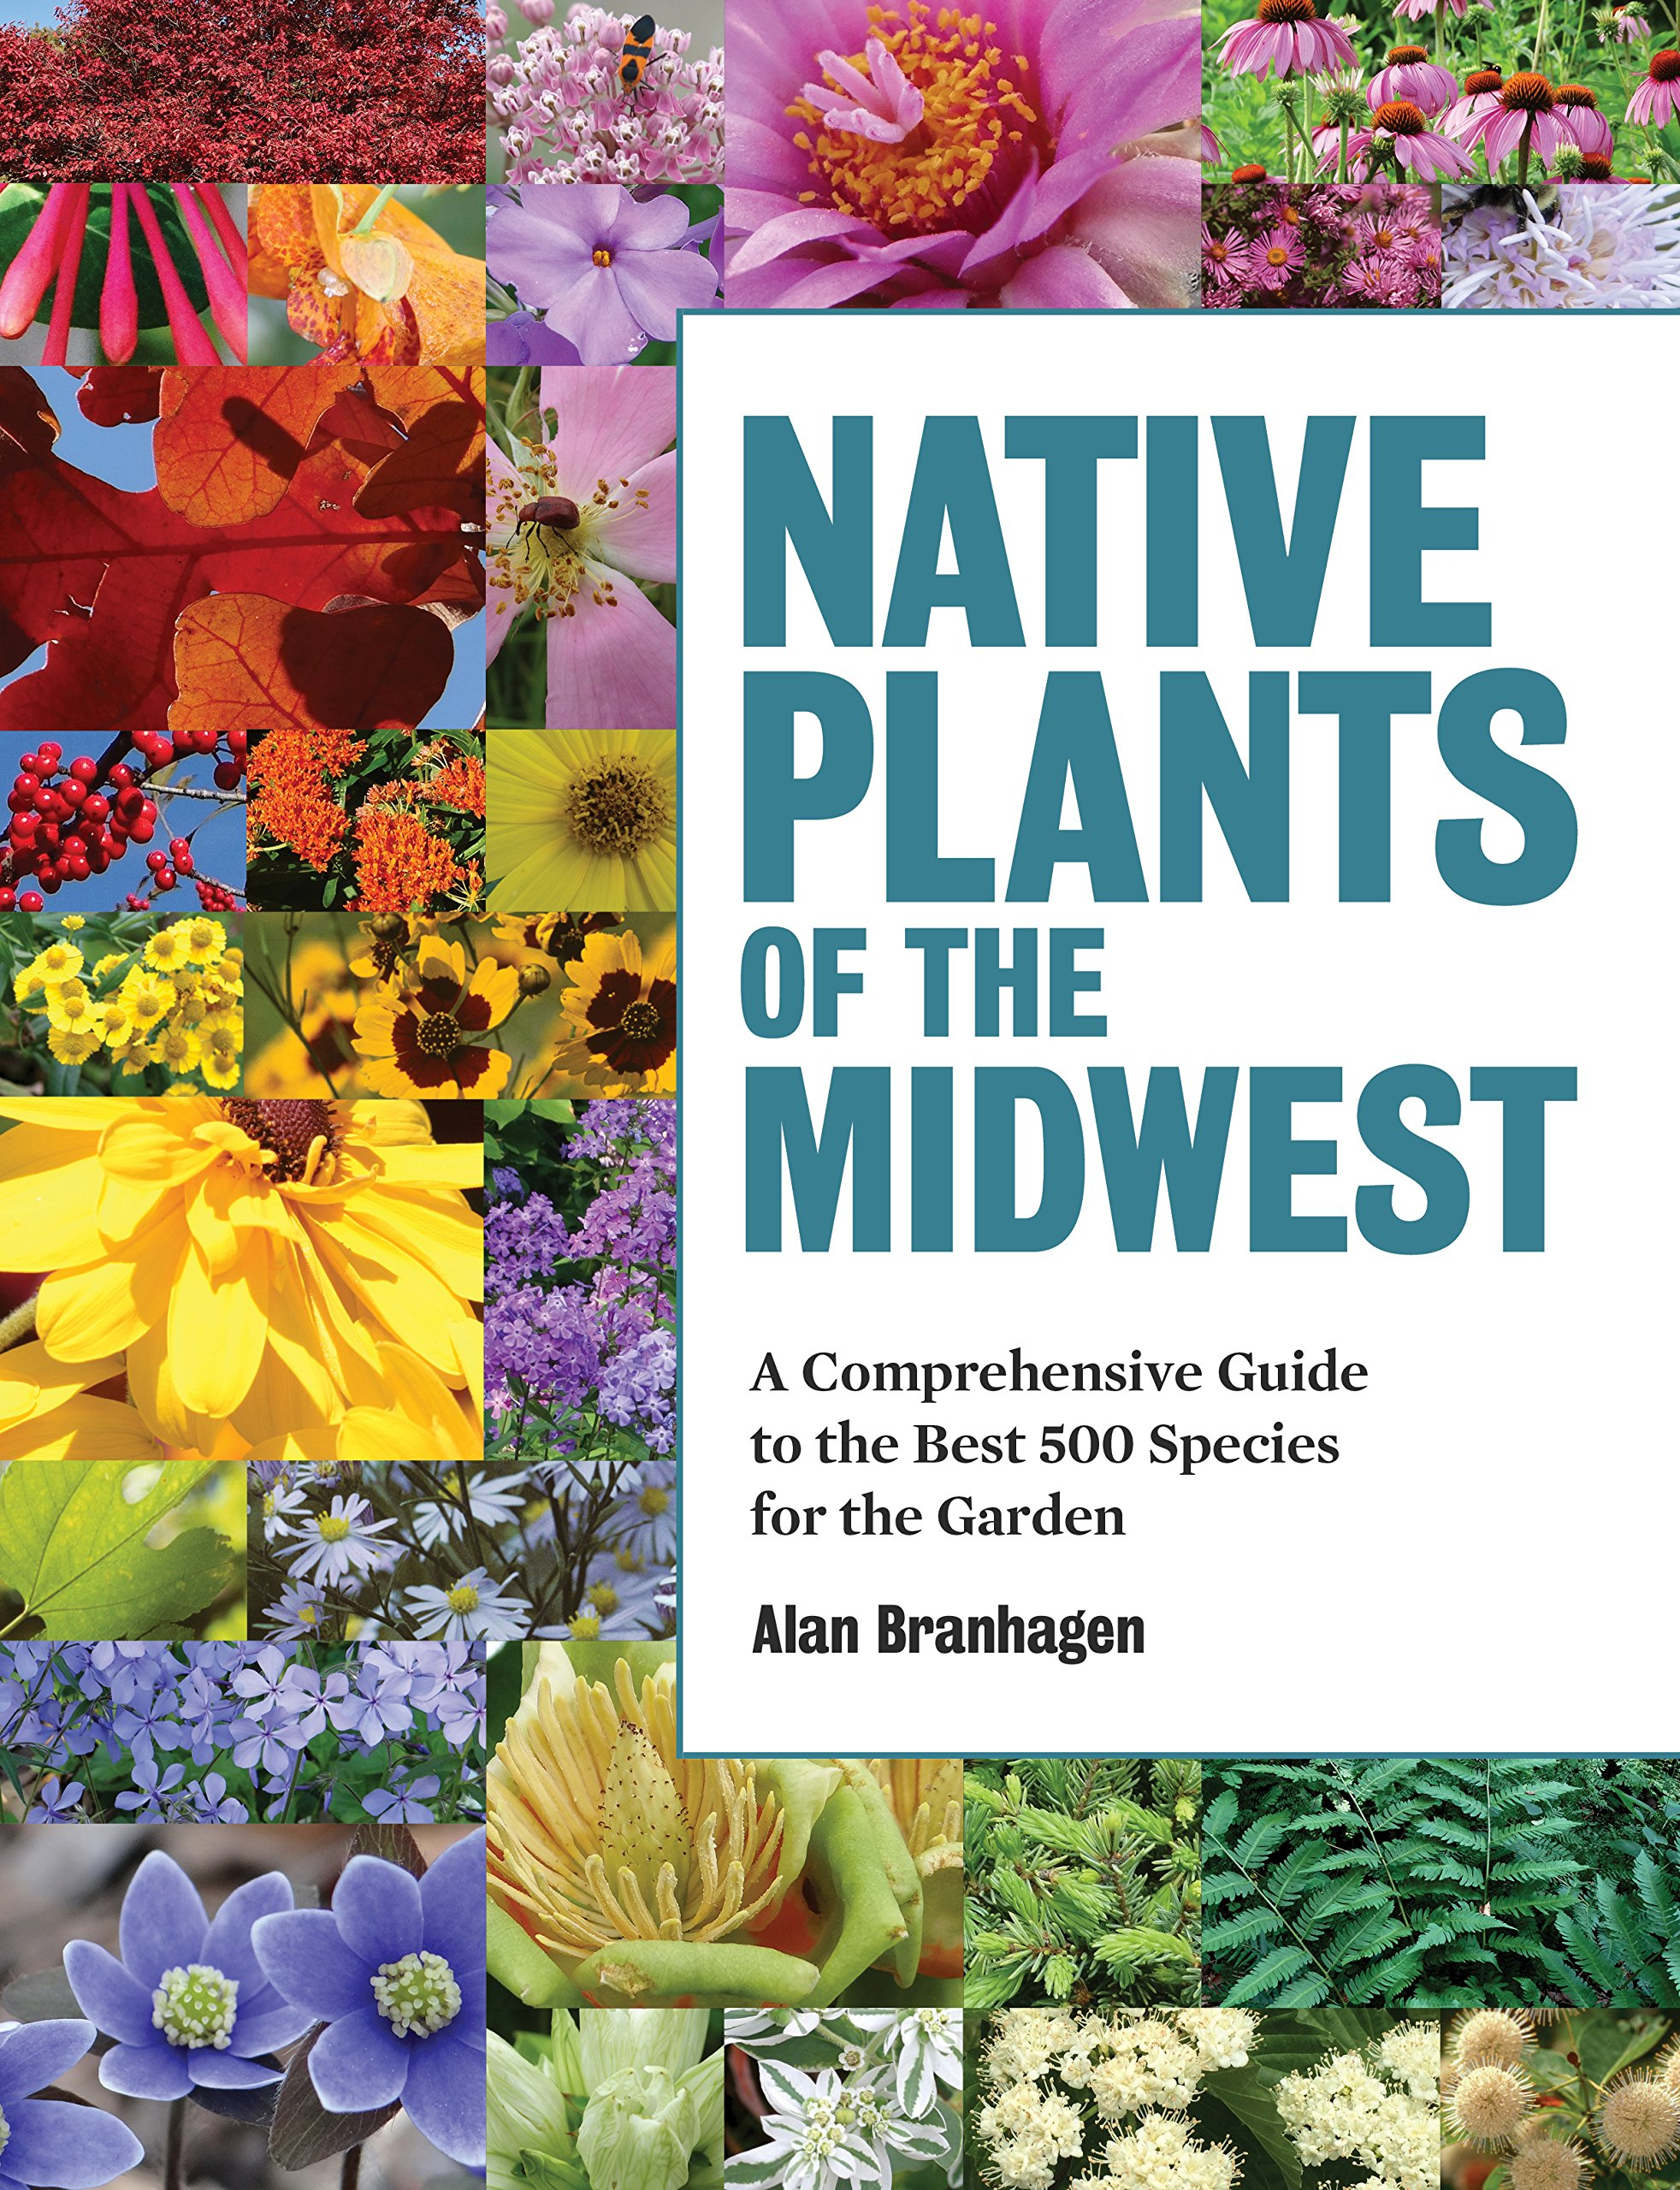 Native Plants of the Midwest: A Comprehensive Guide to the ... on herb garden designs, new england garden designs, small perennial garden designs, flower bed designs, country garden designs, annual flower garden plants, annual garden plans, school garden designs, small annual garden designs, outdoor garden designs, indoor garden designs, wildflower garden designs, shrubs designs, simple garden designs, annual flowers for planters, flowers drought tolerant garden designs, garden arrangements and designs, front garden designs, annual fund appeal samples, unique garden designs,